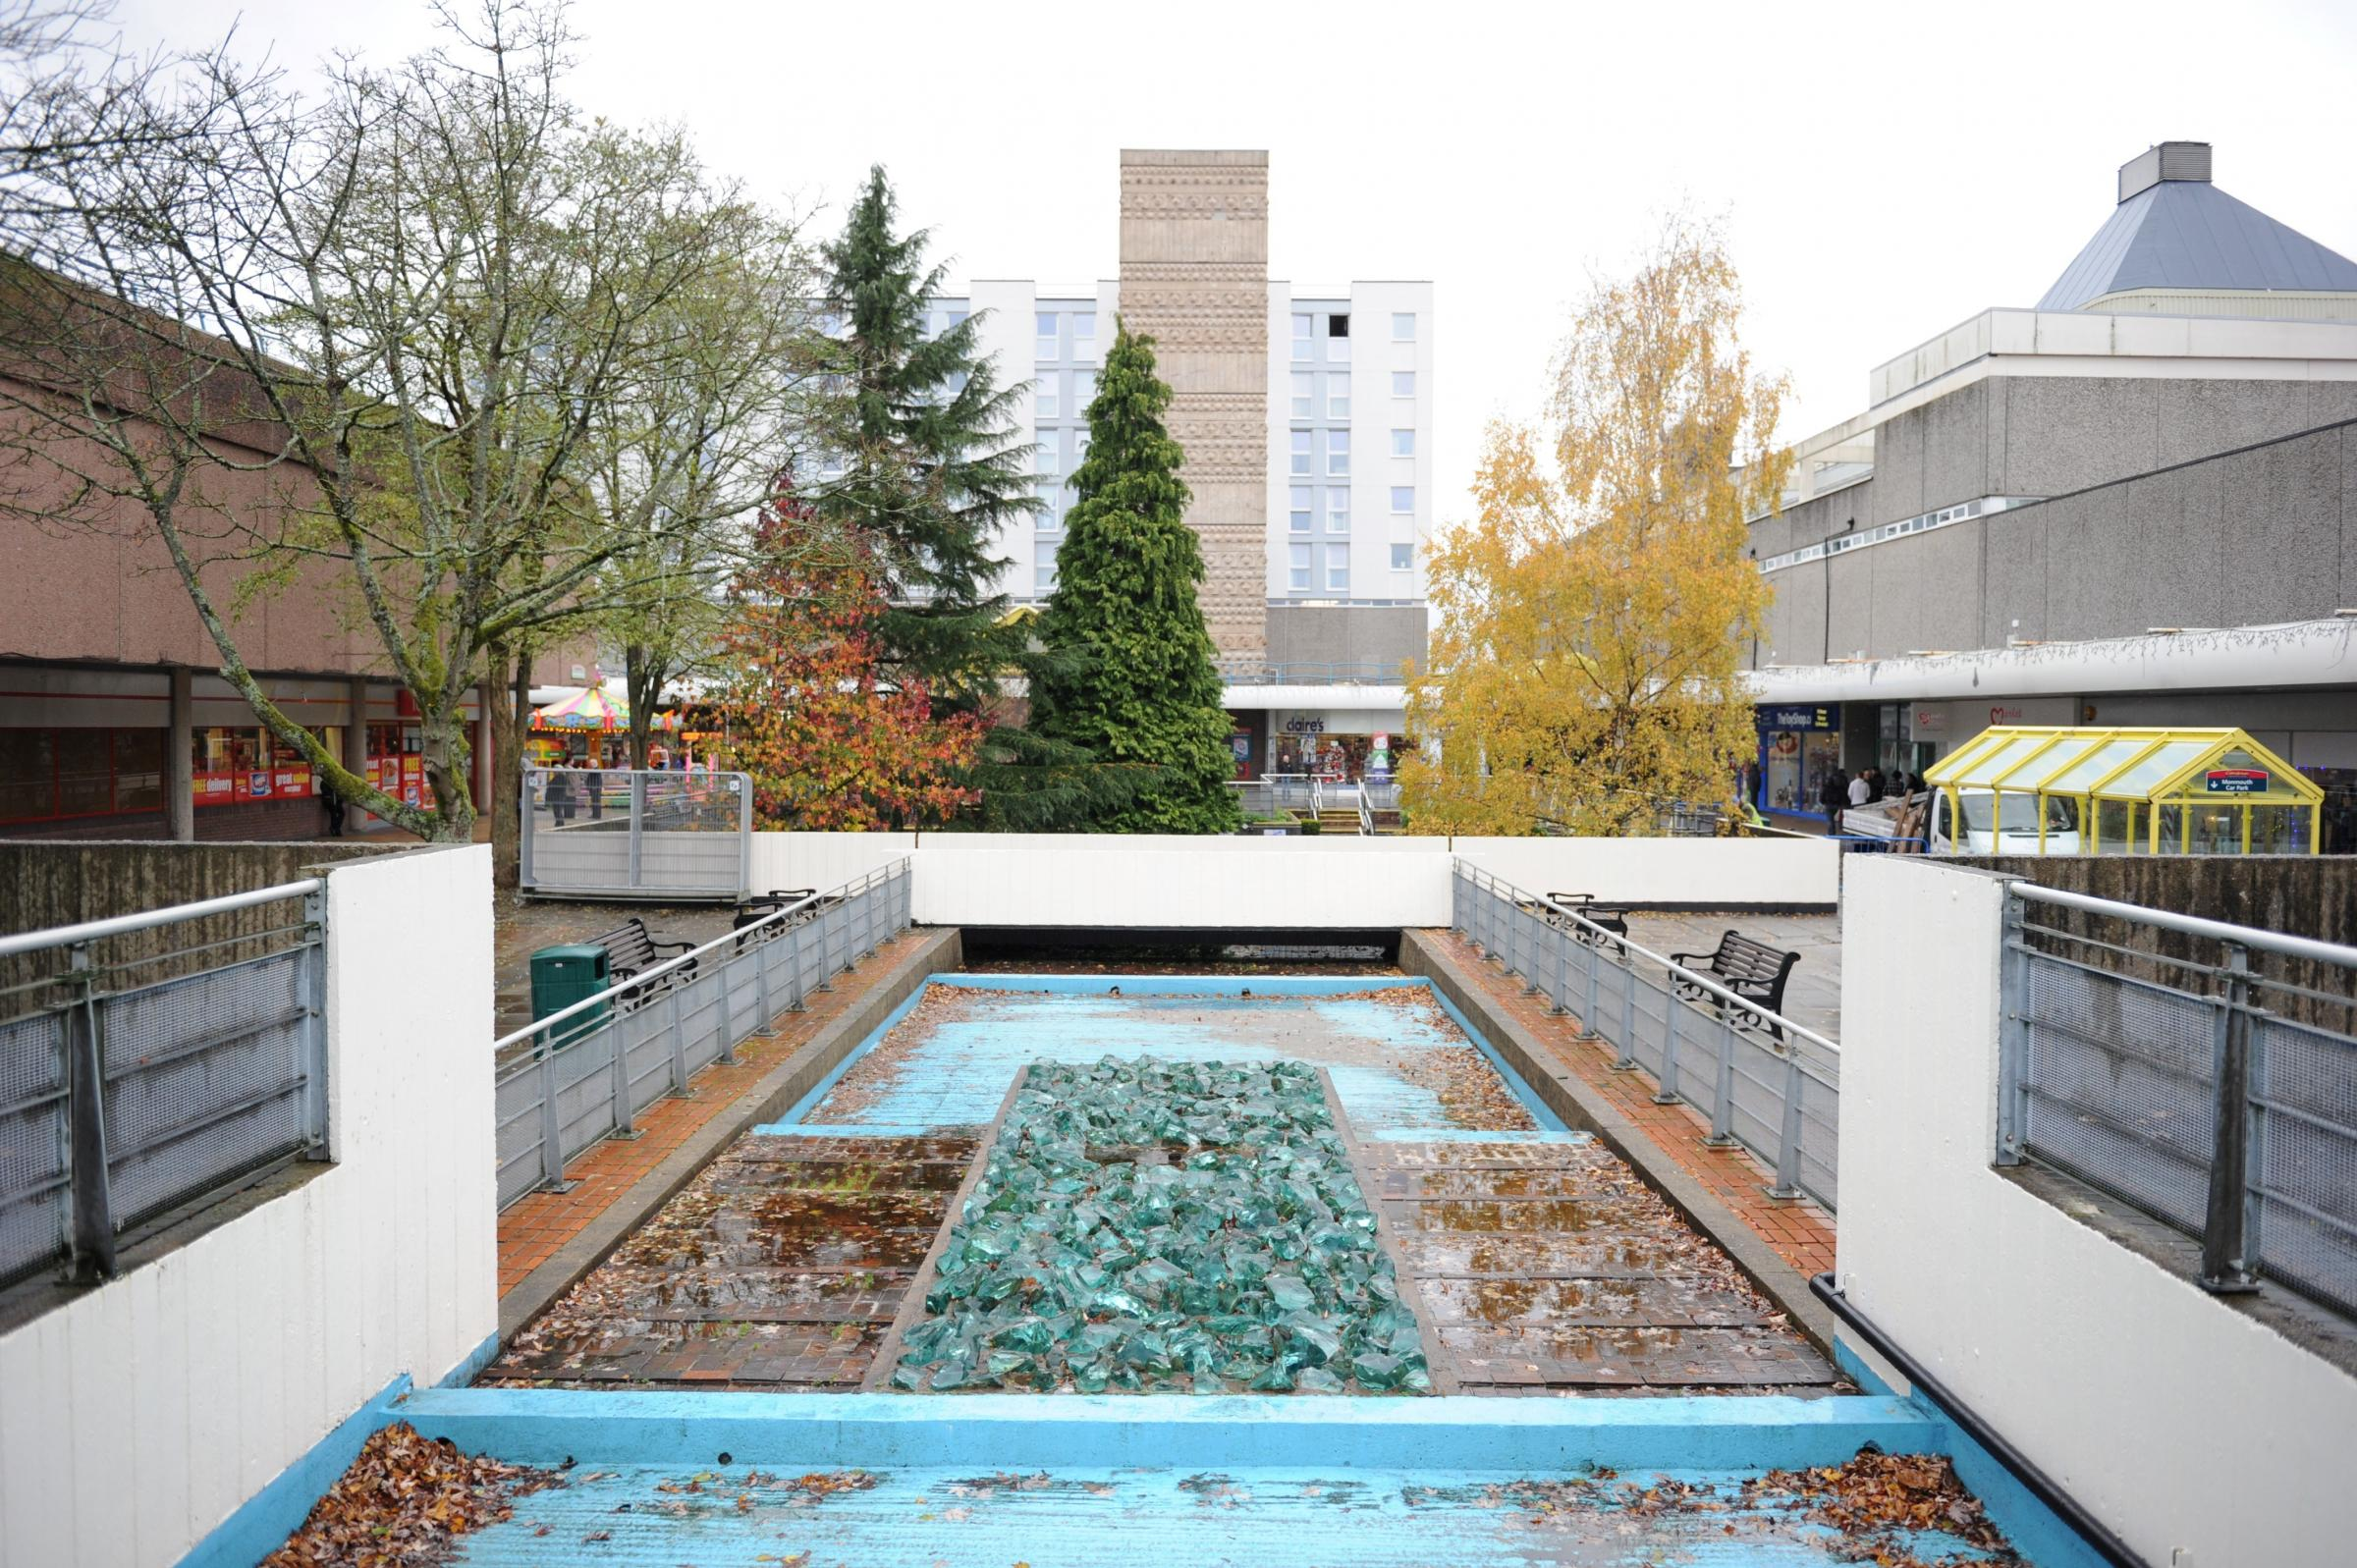 The water gardens at the Cwmbran Centre could be removed